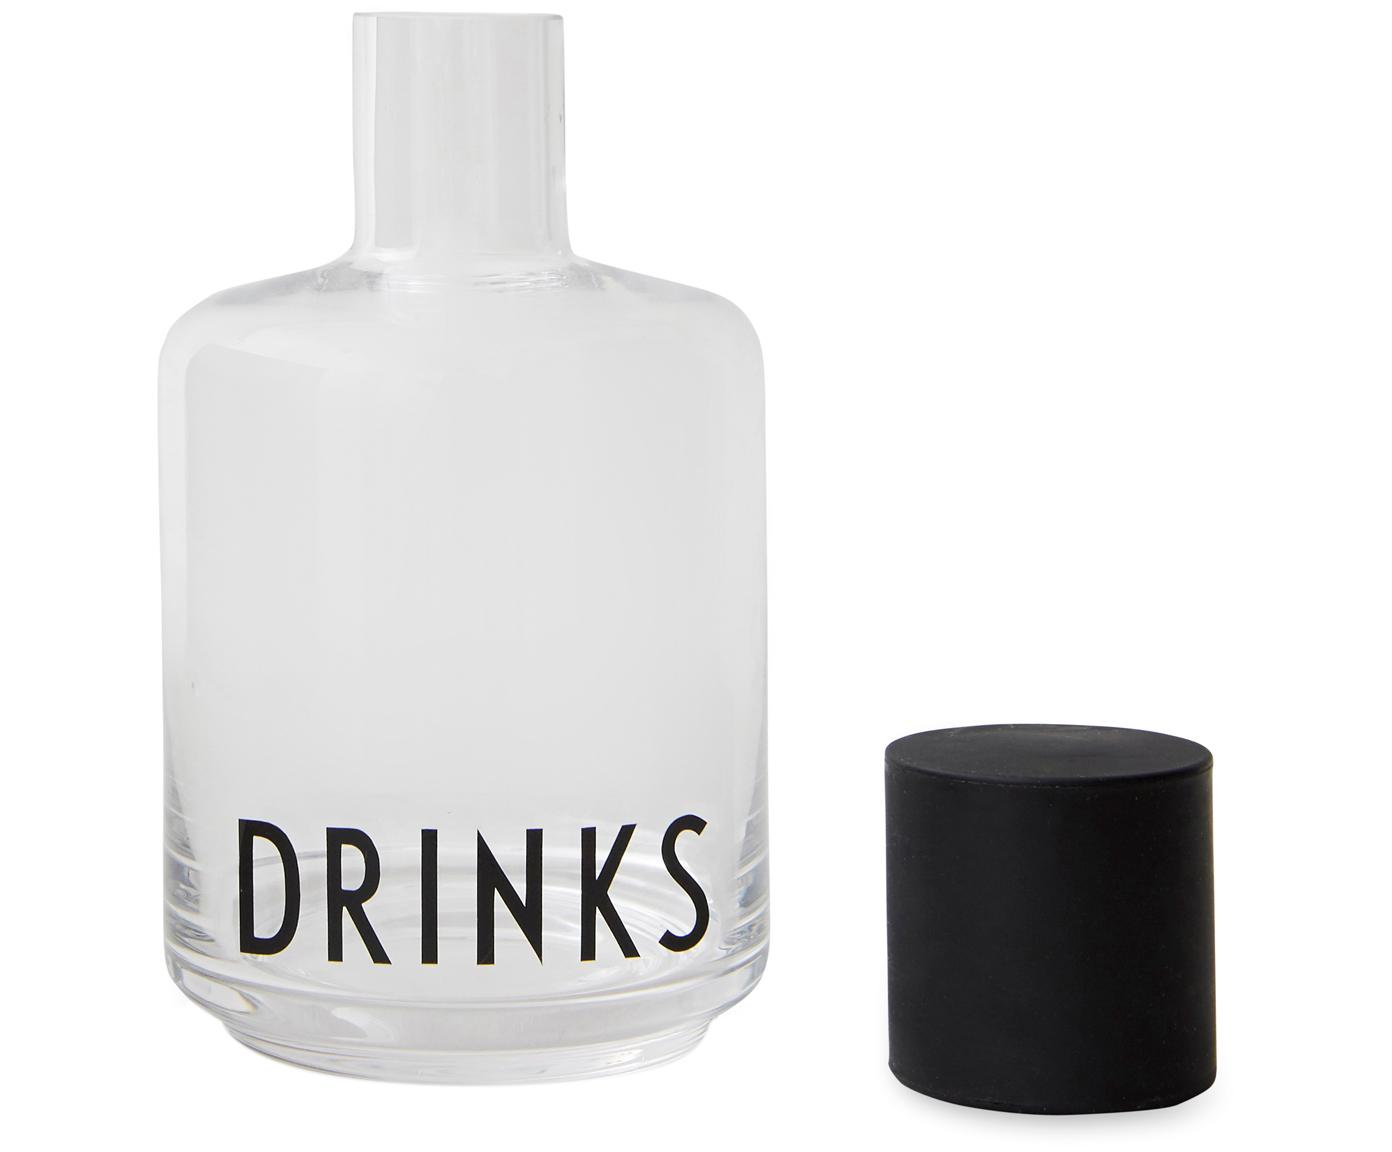 Karaf Drinks, Deksel: siliconen, Transparant, zwart, 500 ml